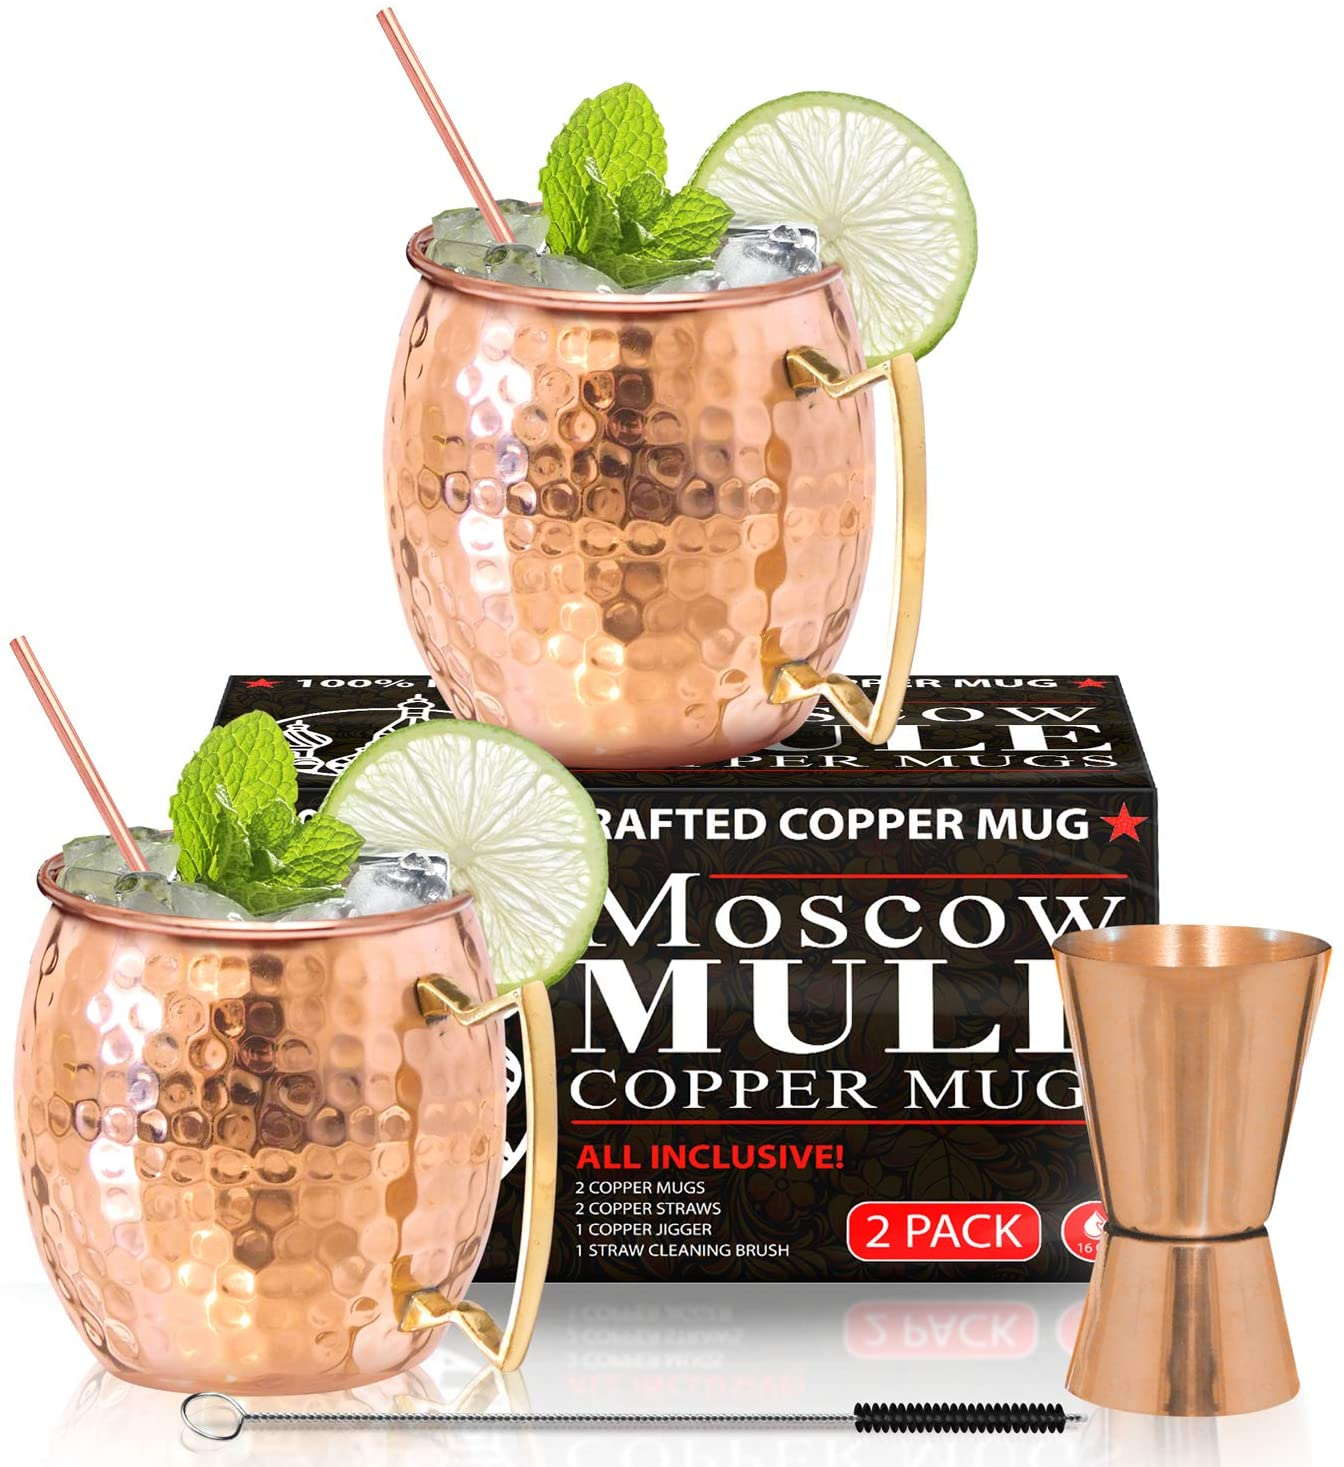 Moscow Mule Copper Mugs - Set of 2-100% HANDCRAFTED - Food Safe Pure Solid Copper Mugs - 16 oz Gift Set with BONUS: Highest Quality Cocktail Copper Straws, Straw Cleaning Brush and Jigger!